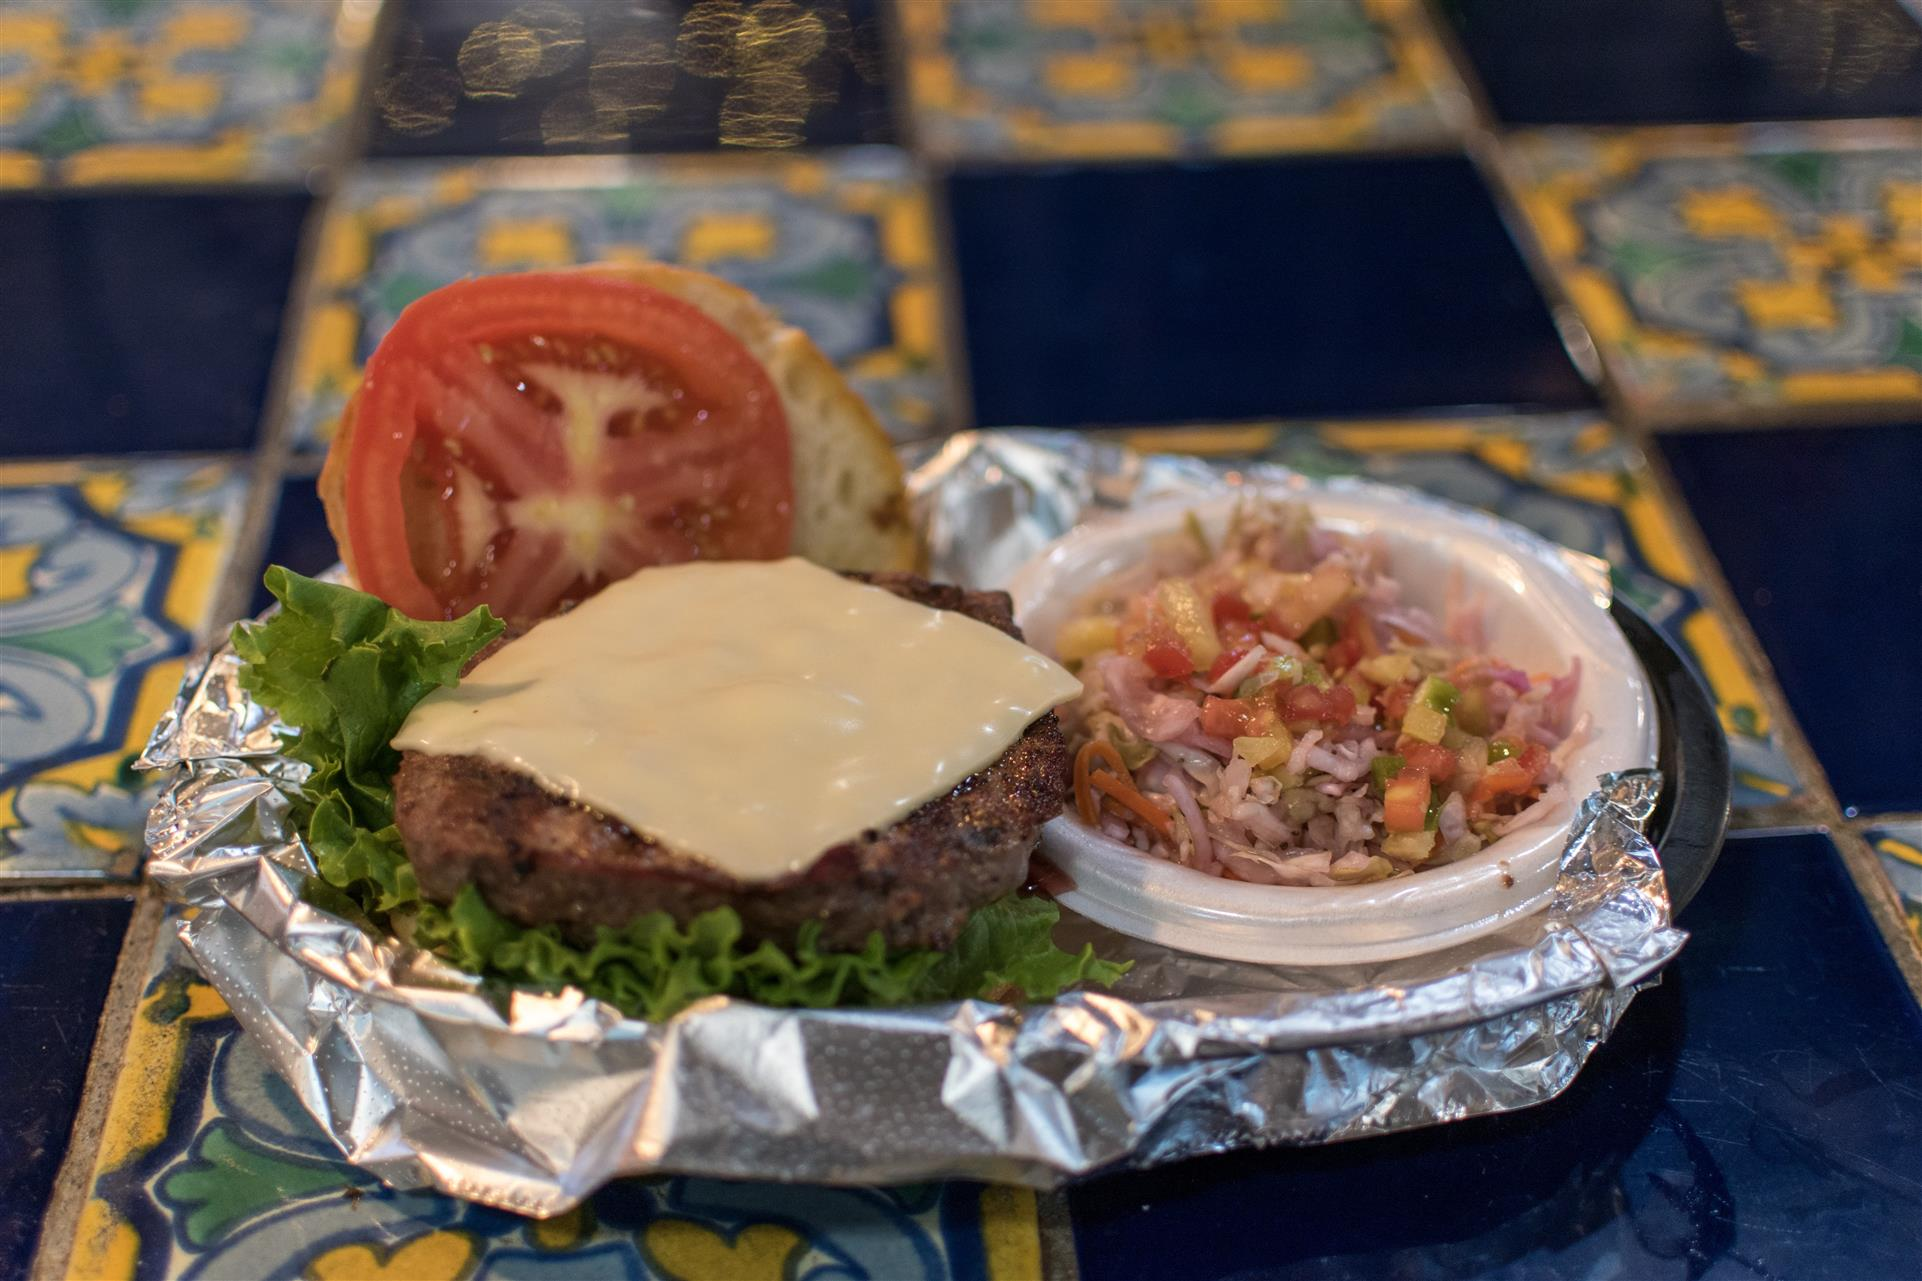 open faced cheeseburger with lettuce, tomtato and a side of pico de galo